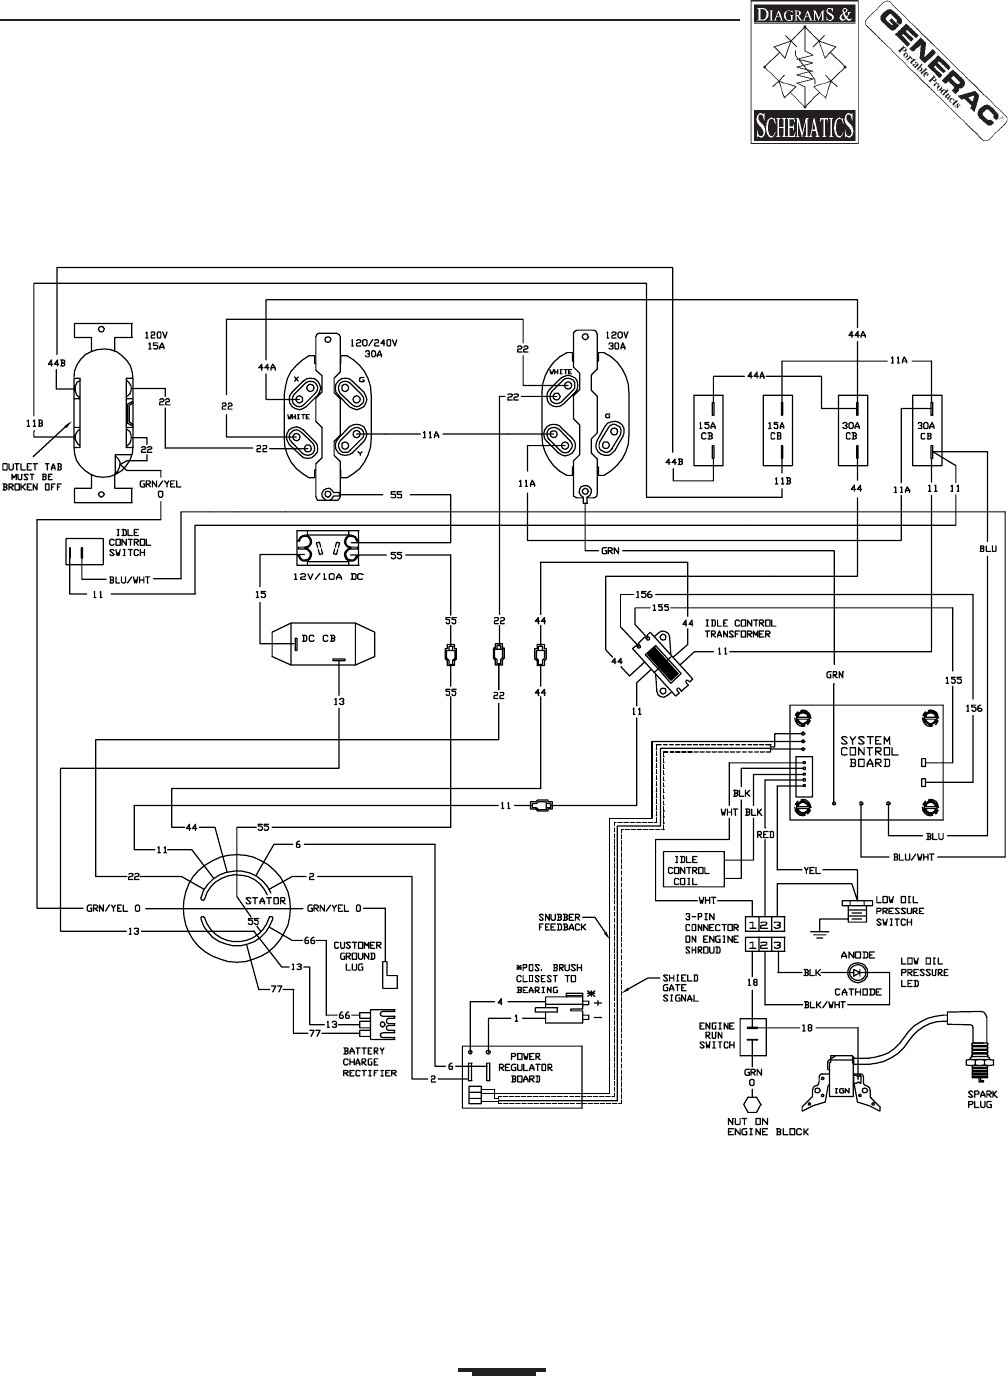 goulds pump wiring diagram   26 wiring diagram images